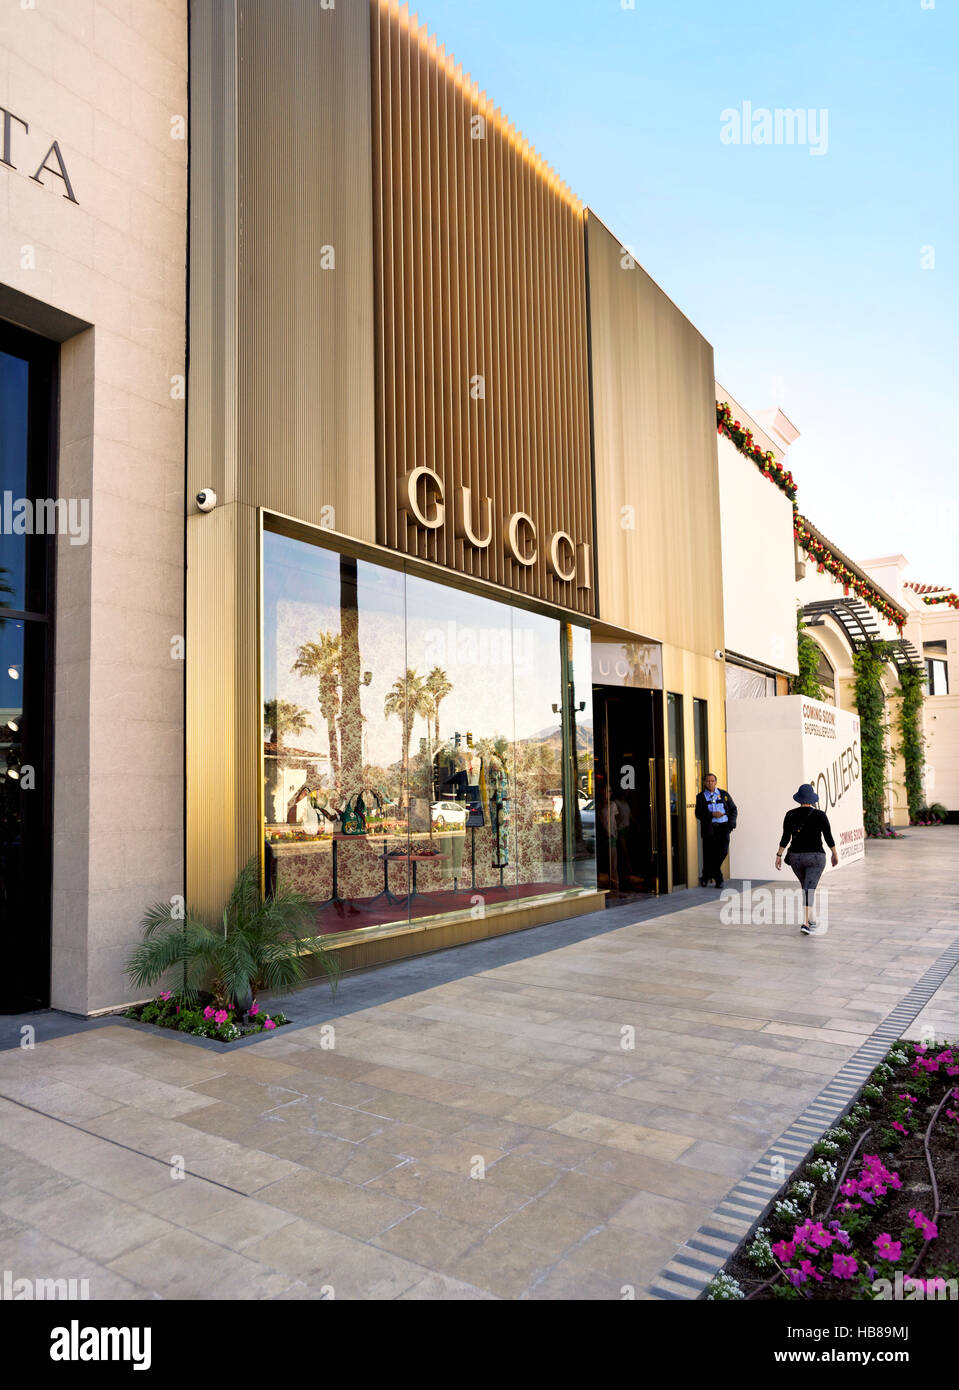 5caf050c5f9 Gucci Store Front Stock Photos   Gucci Store Front Stock Images - Alamy